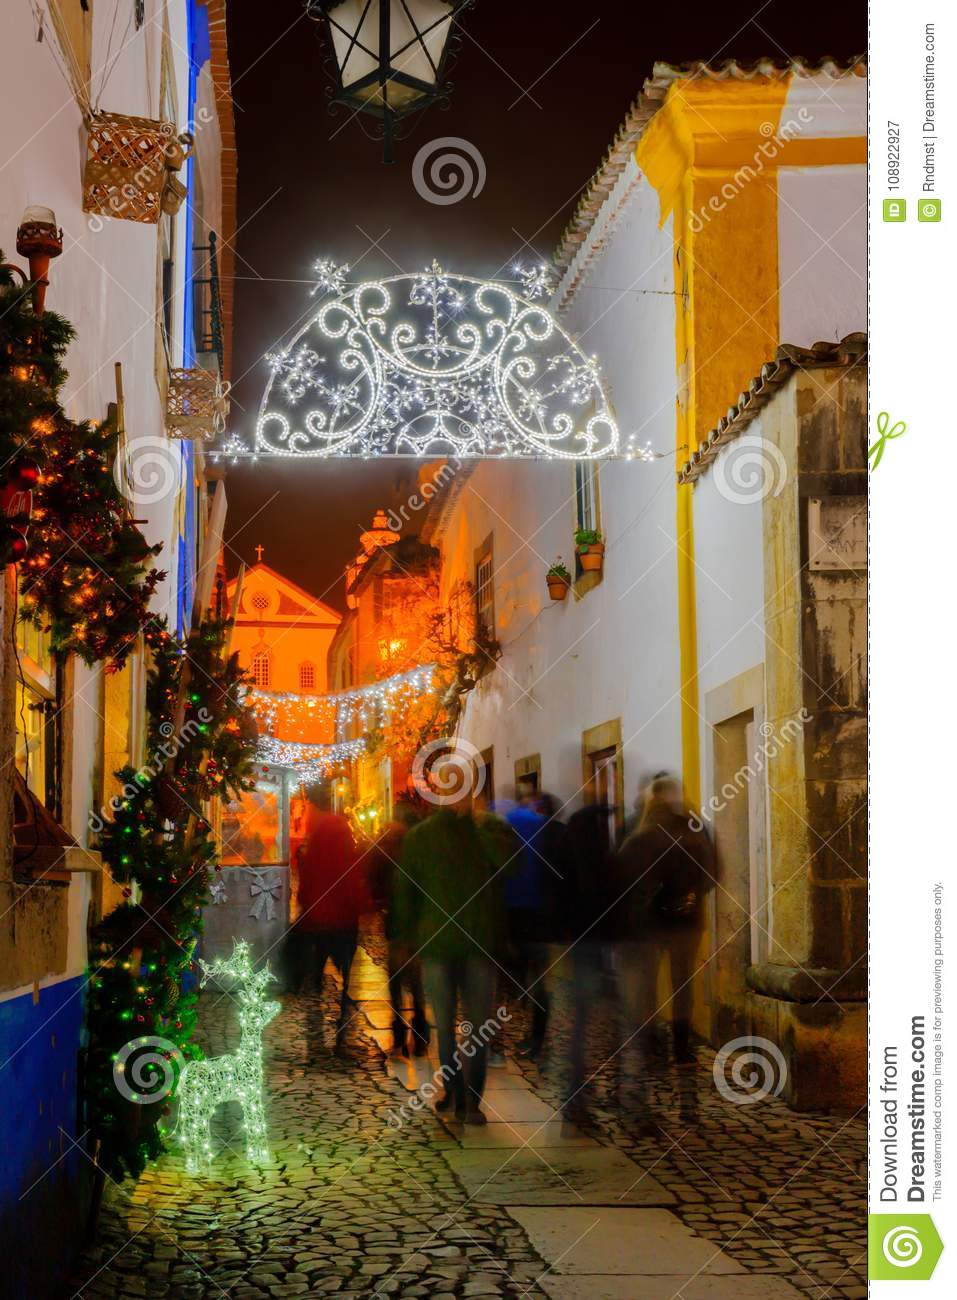 obidos portugal december 27 2017 view of an alley in the old town with local businesses saint james church and christmas decorations in obidos - Christmas Decorations For Businesses